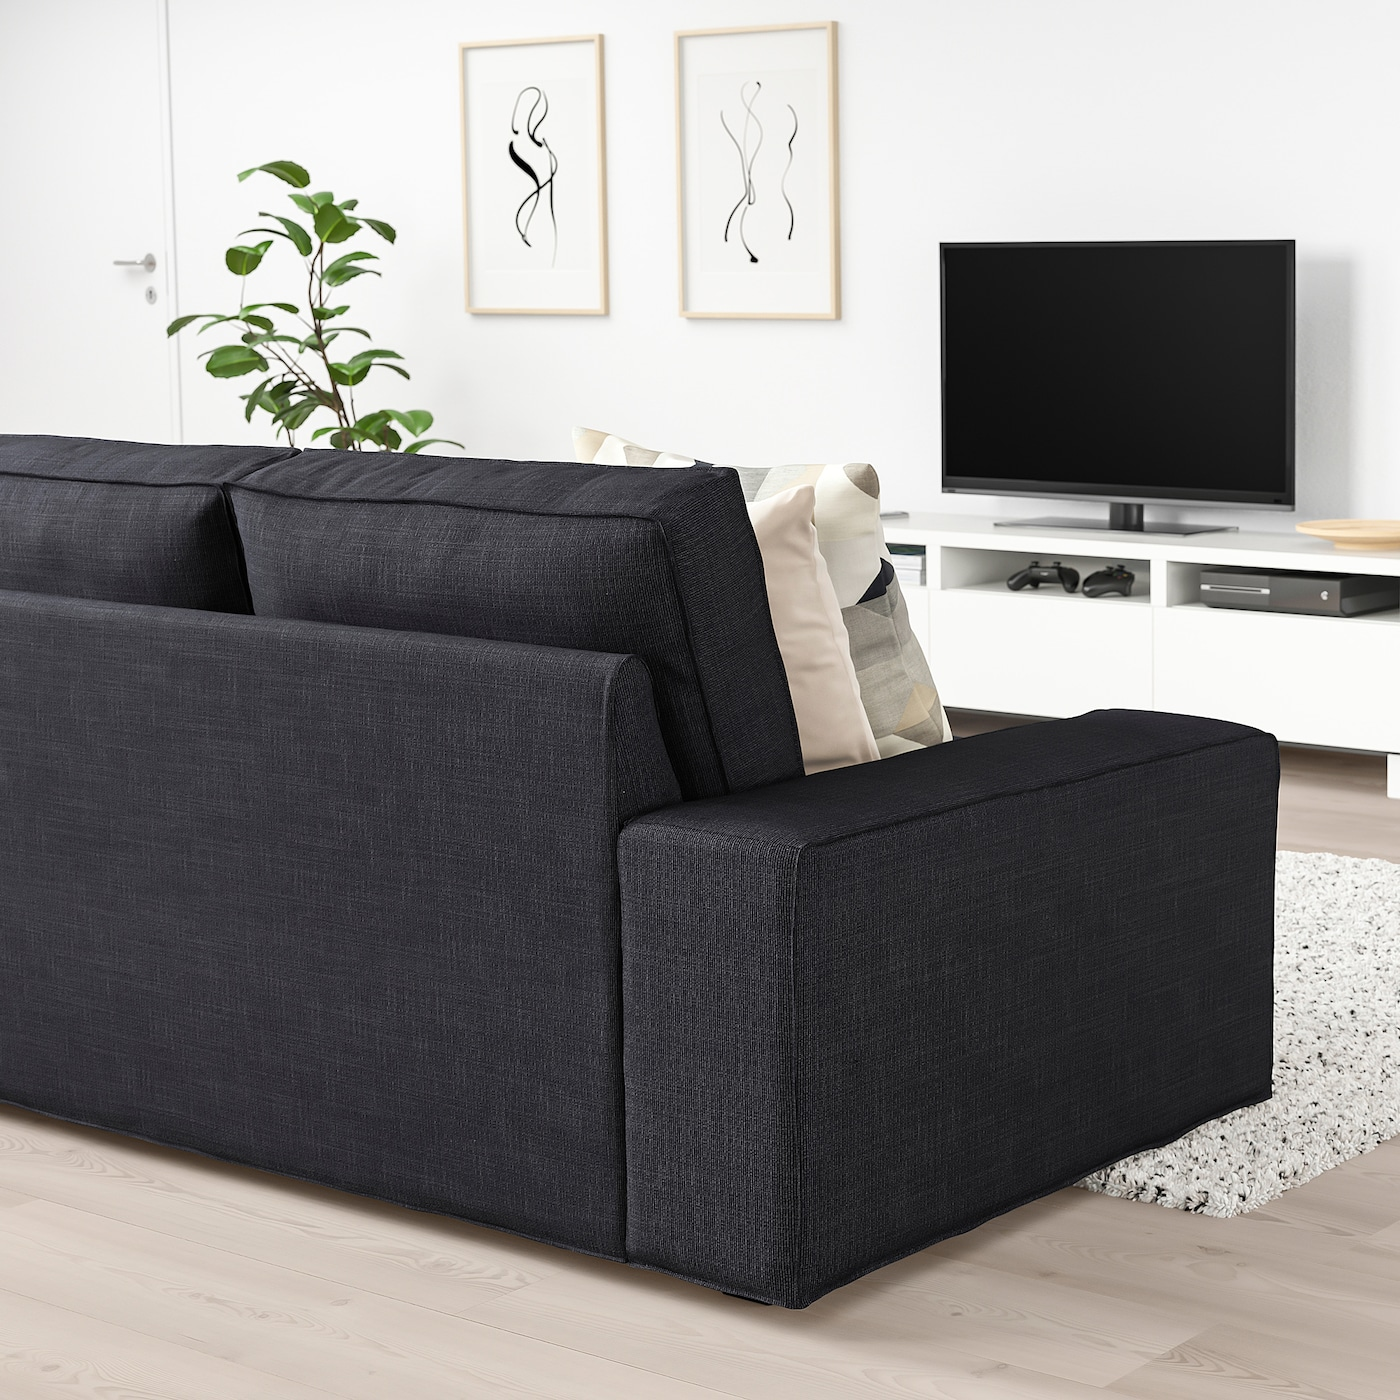 Kivik 2er Sofa Hillared Anthrazit Ikea Deutschland